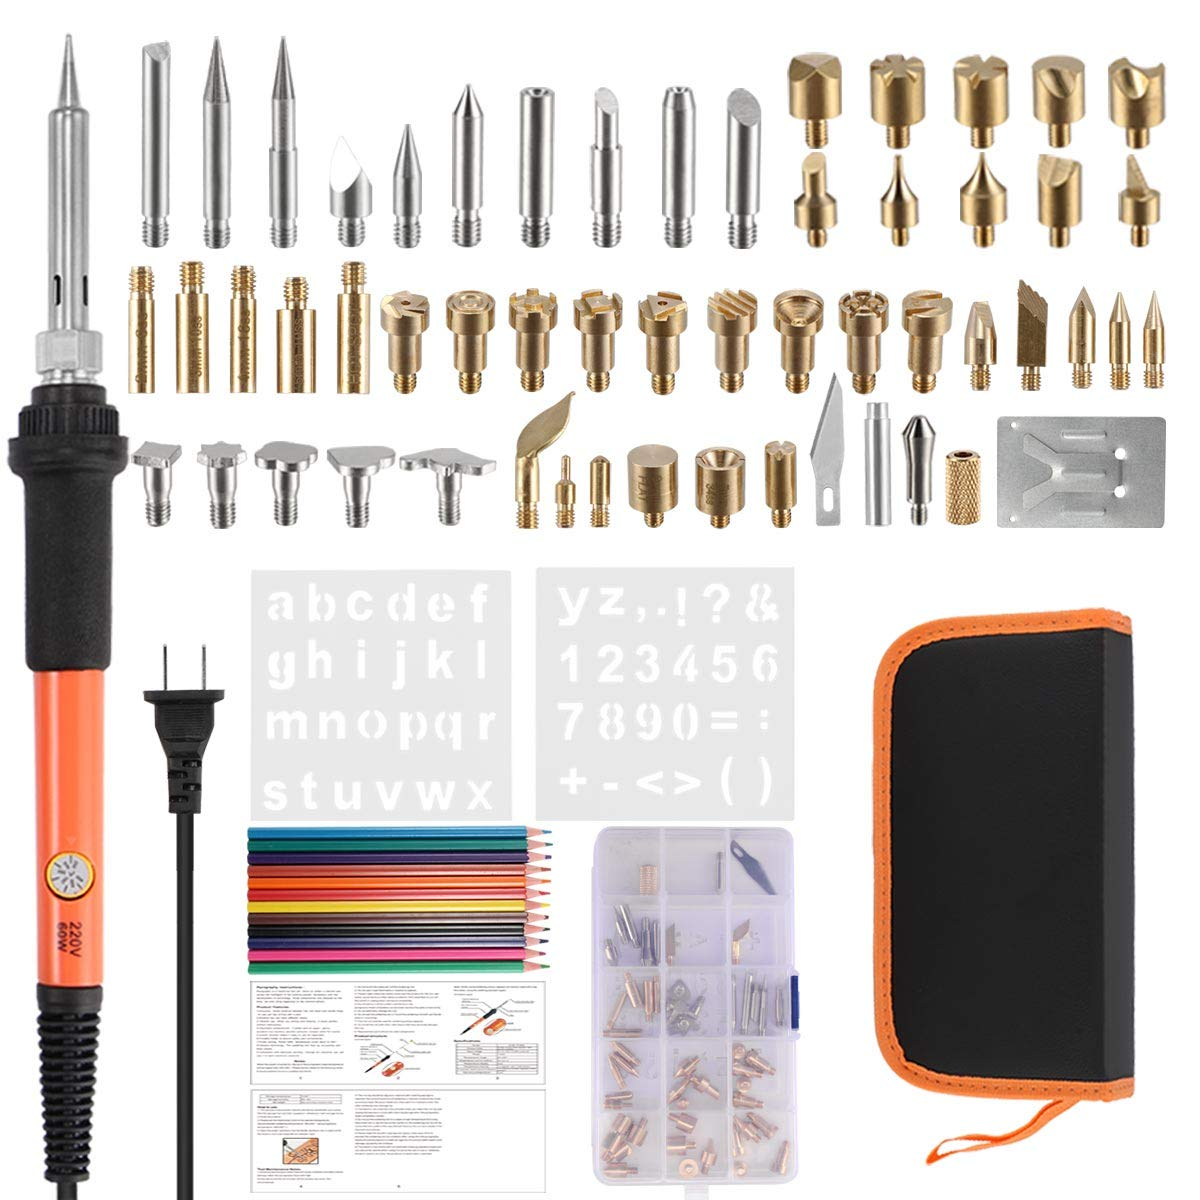 Wood Burning Kit, Wood Burning Tool Pen Set, 71Pcs 60W Professional Electric Wood Burning Tool Kit Temperature Adjustable with Soldering Iron Pen, Emboss/Carving Tip,Soldering Tip as Fathers' Day Gift